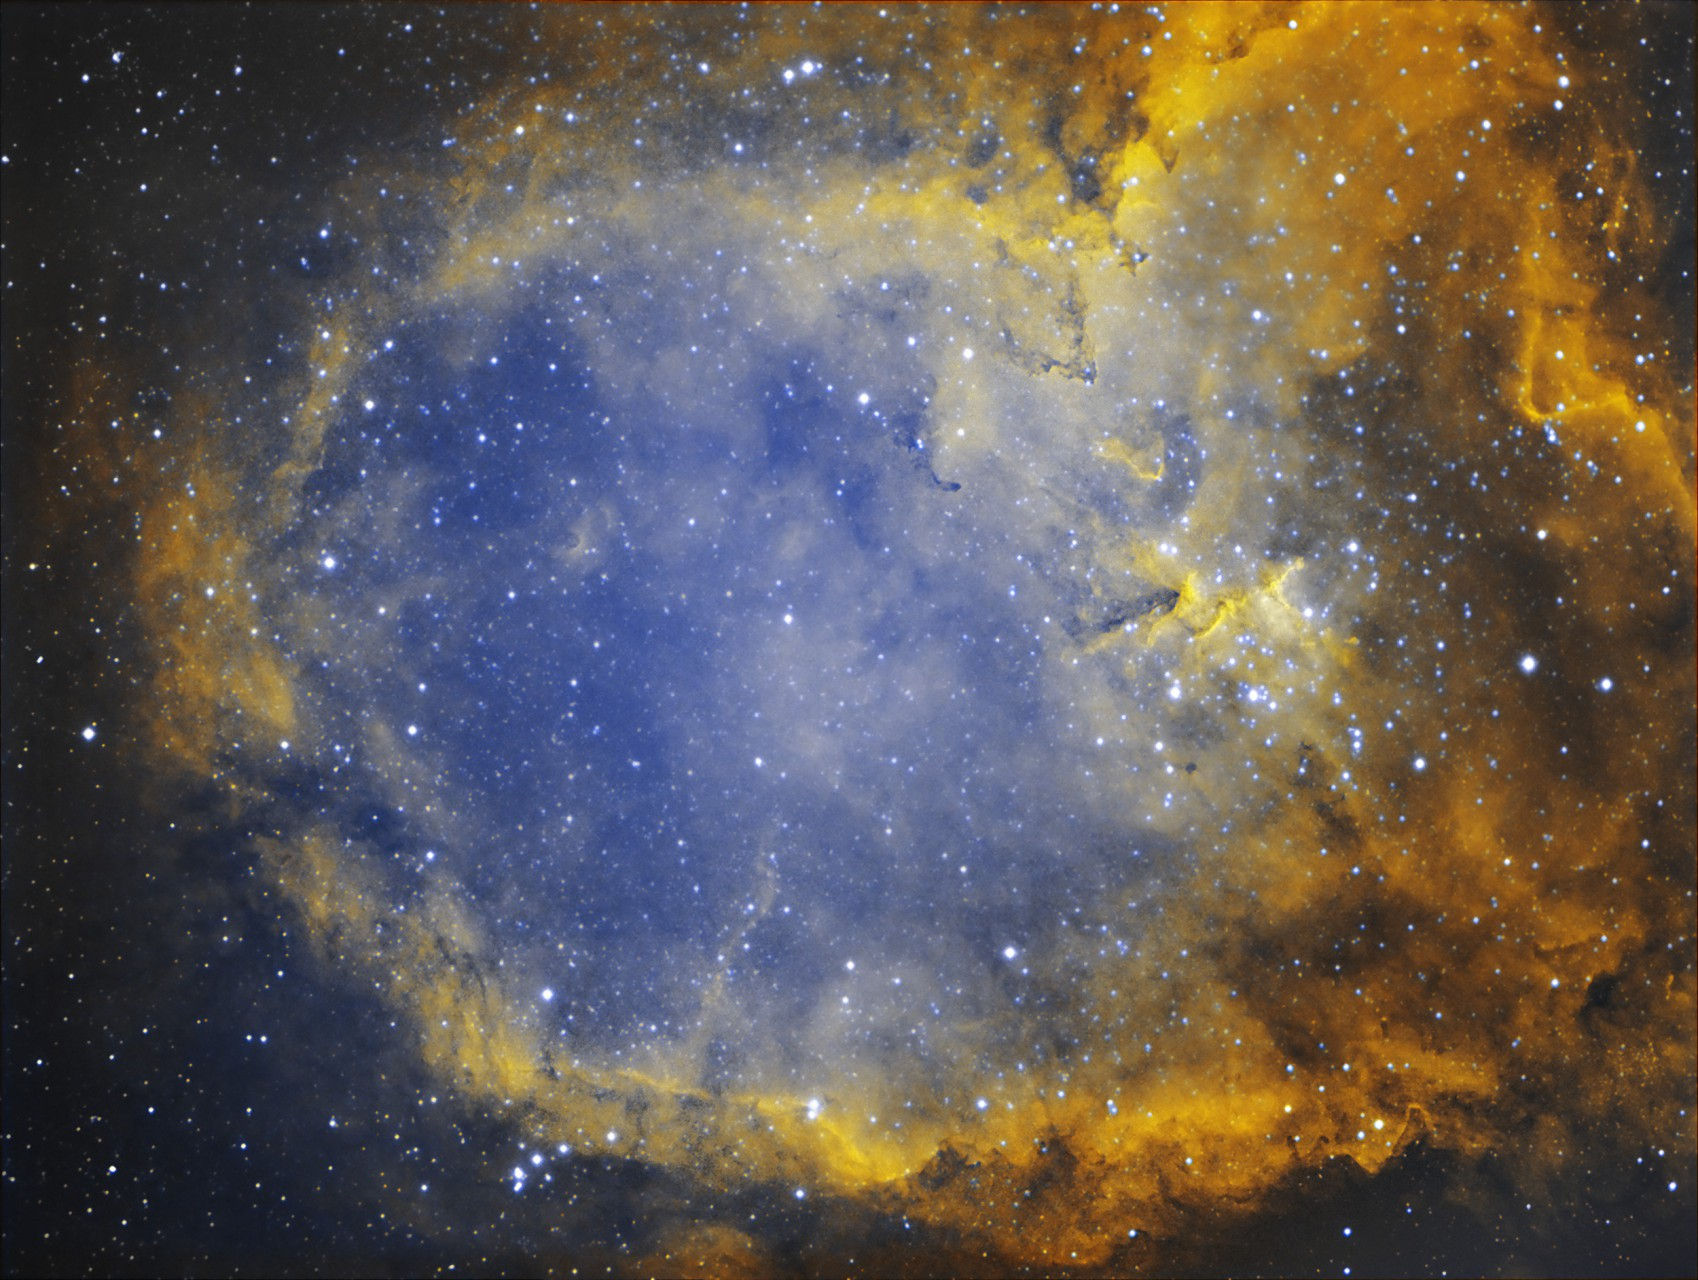 Heart Nebula (IC 1805)